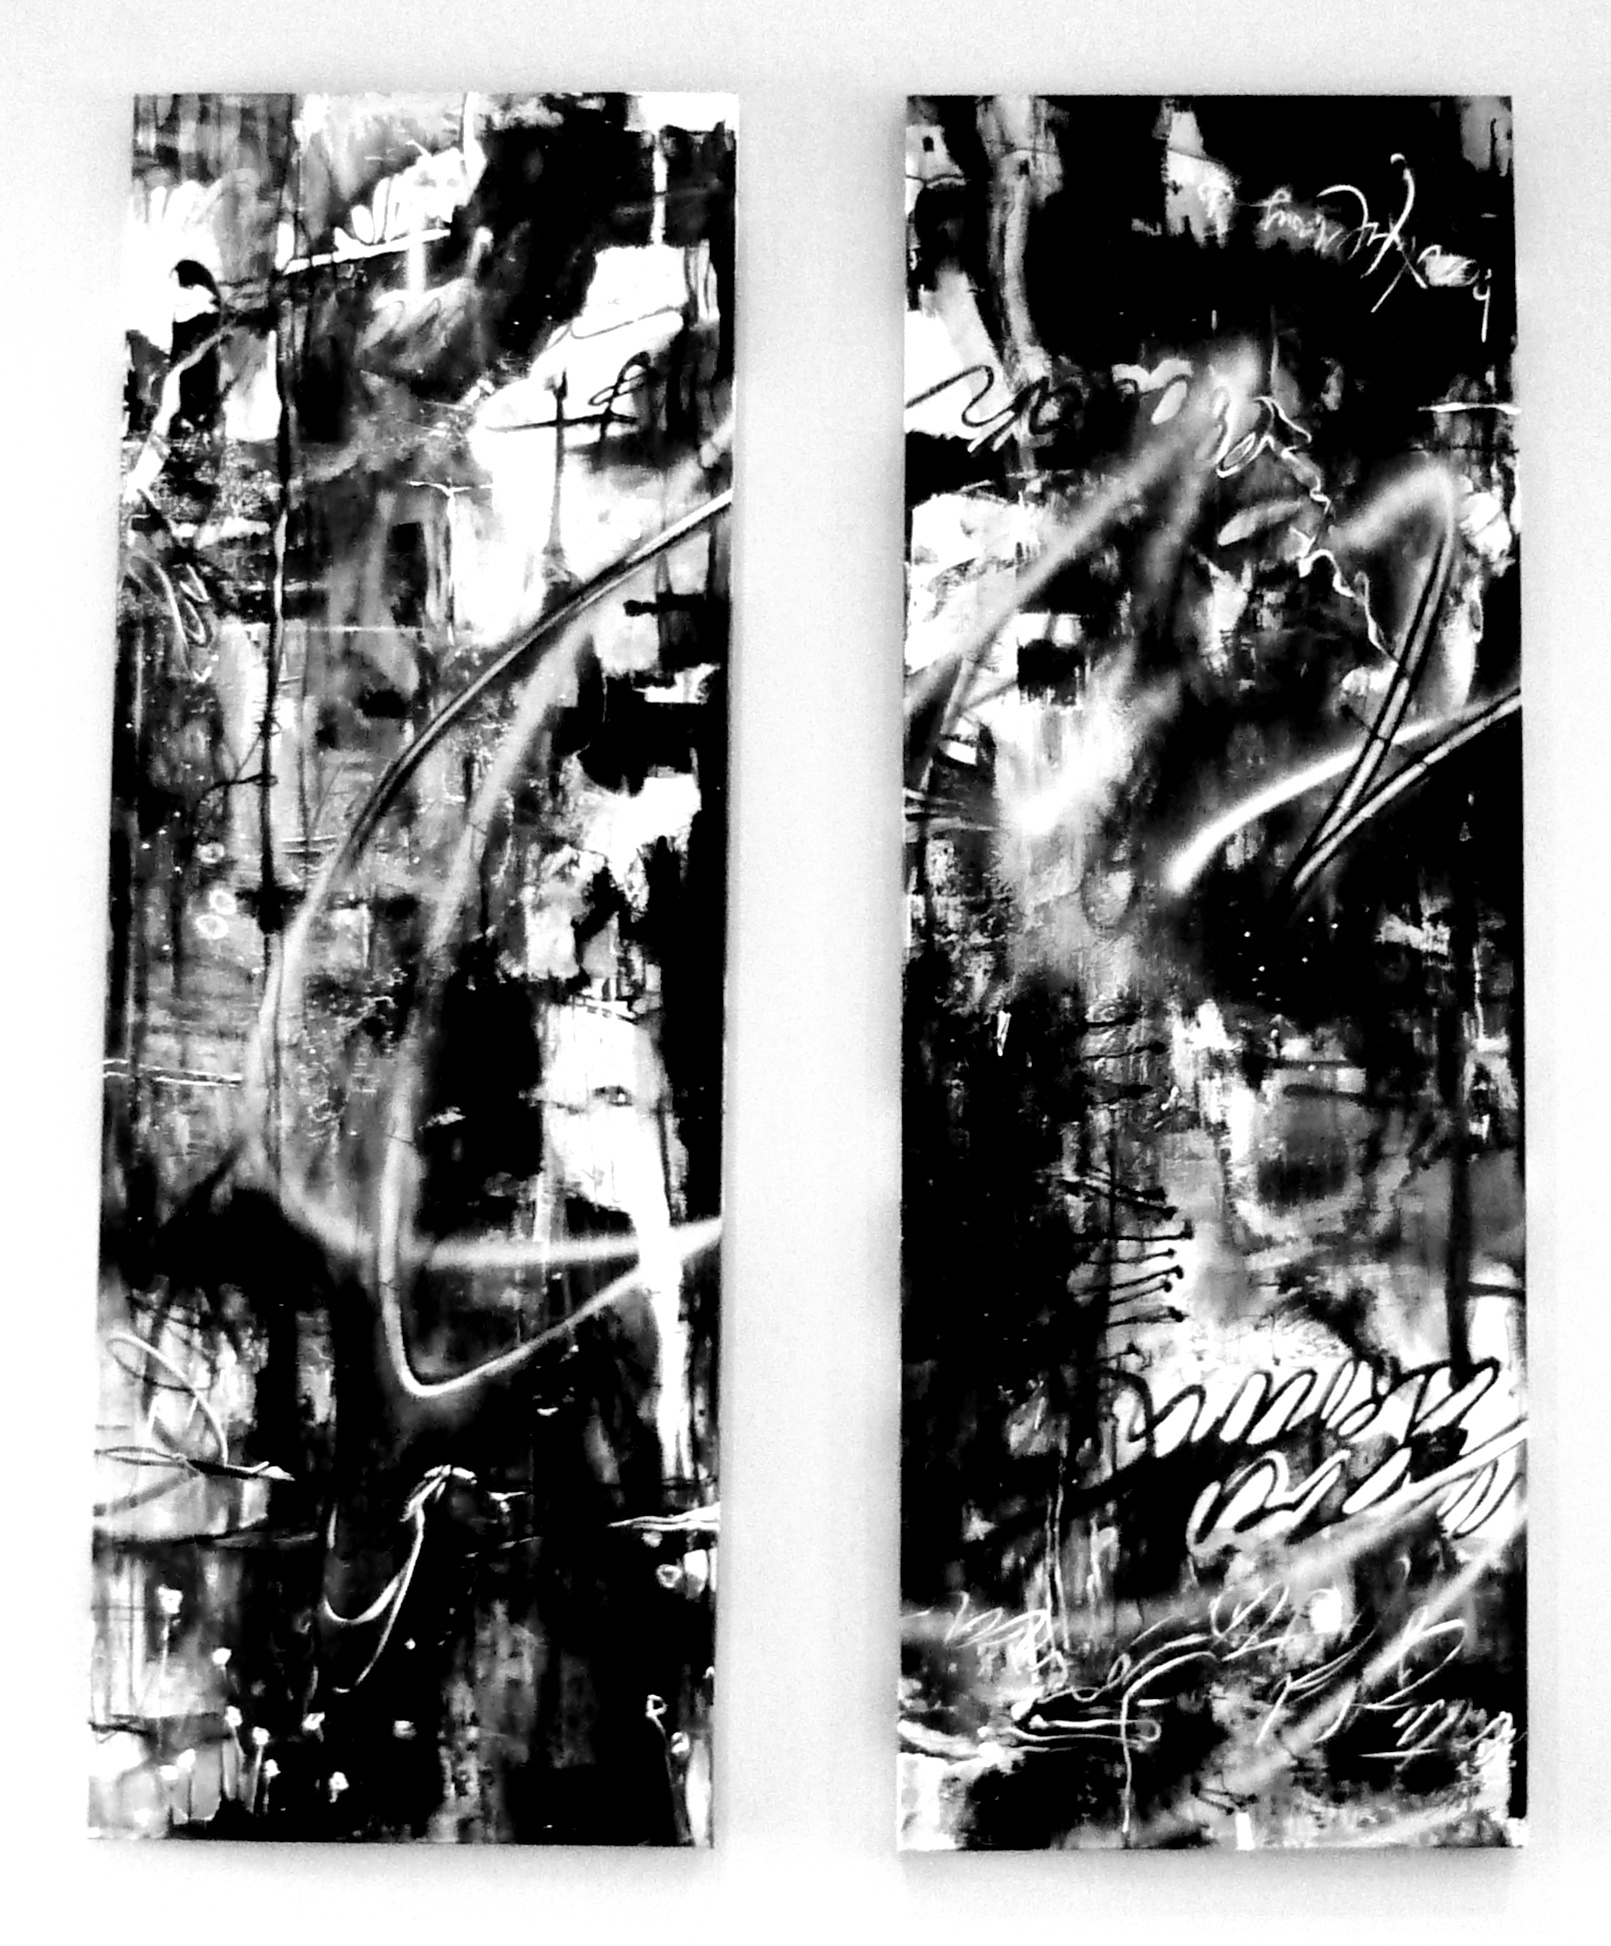 Chaos Panels,  72 in x 60 in., enamel, acrylic, oil, graphite, spray paint and aluminum on canvas, 2011